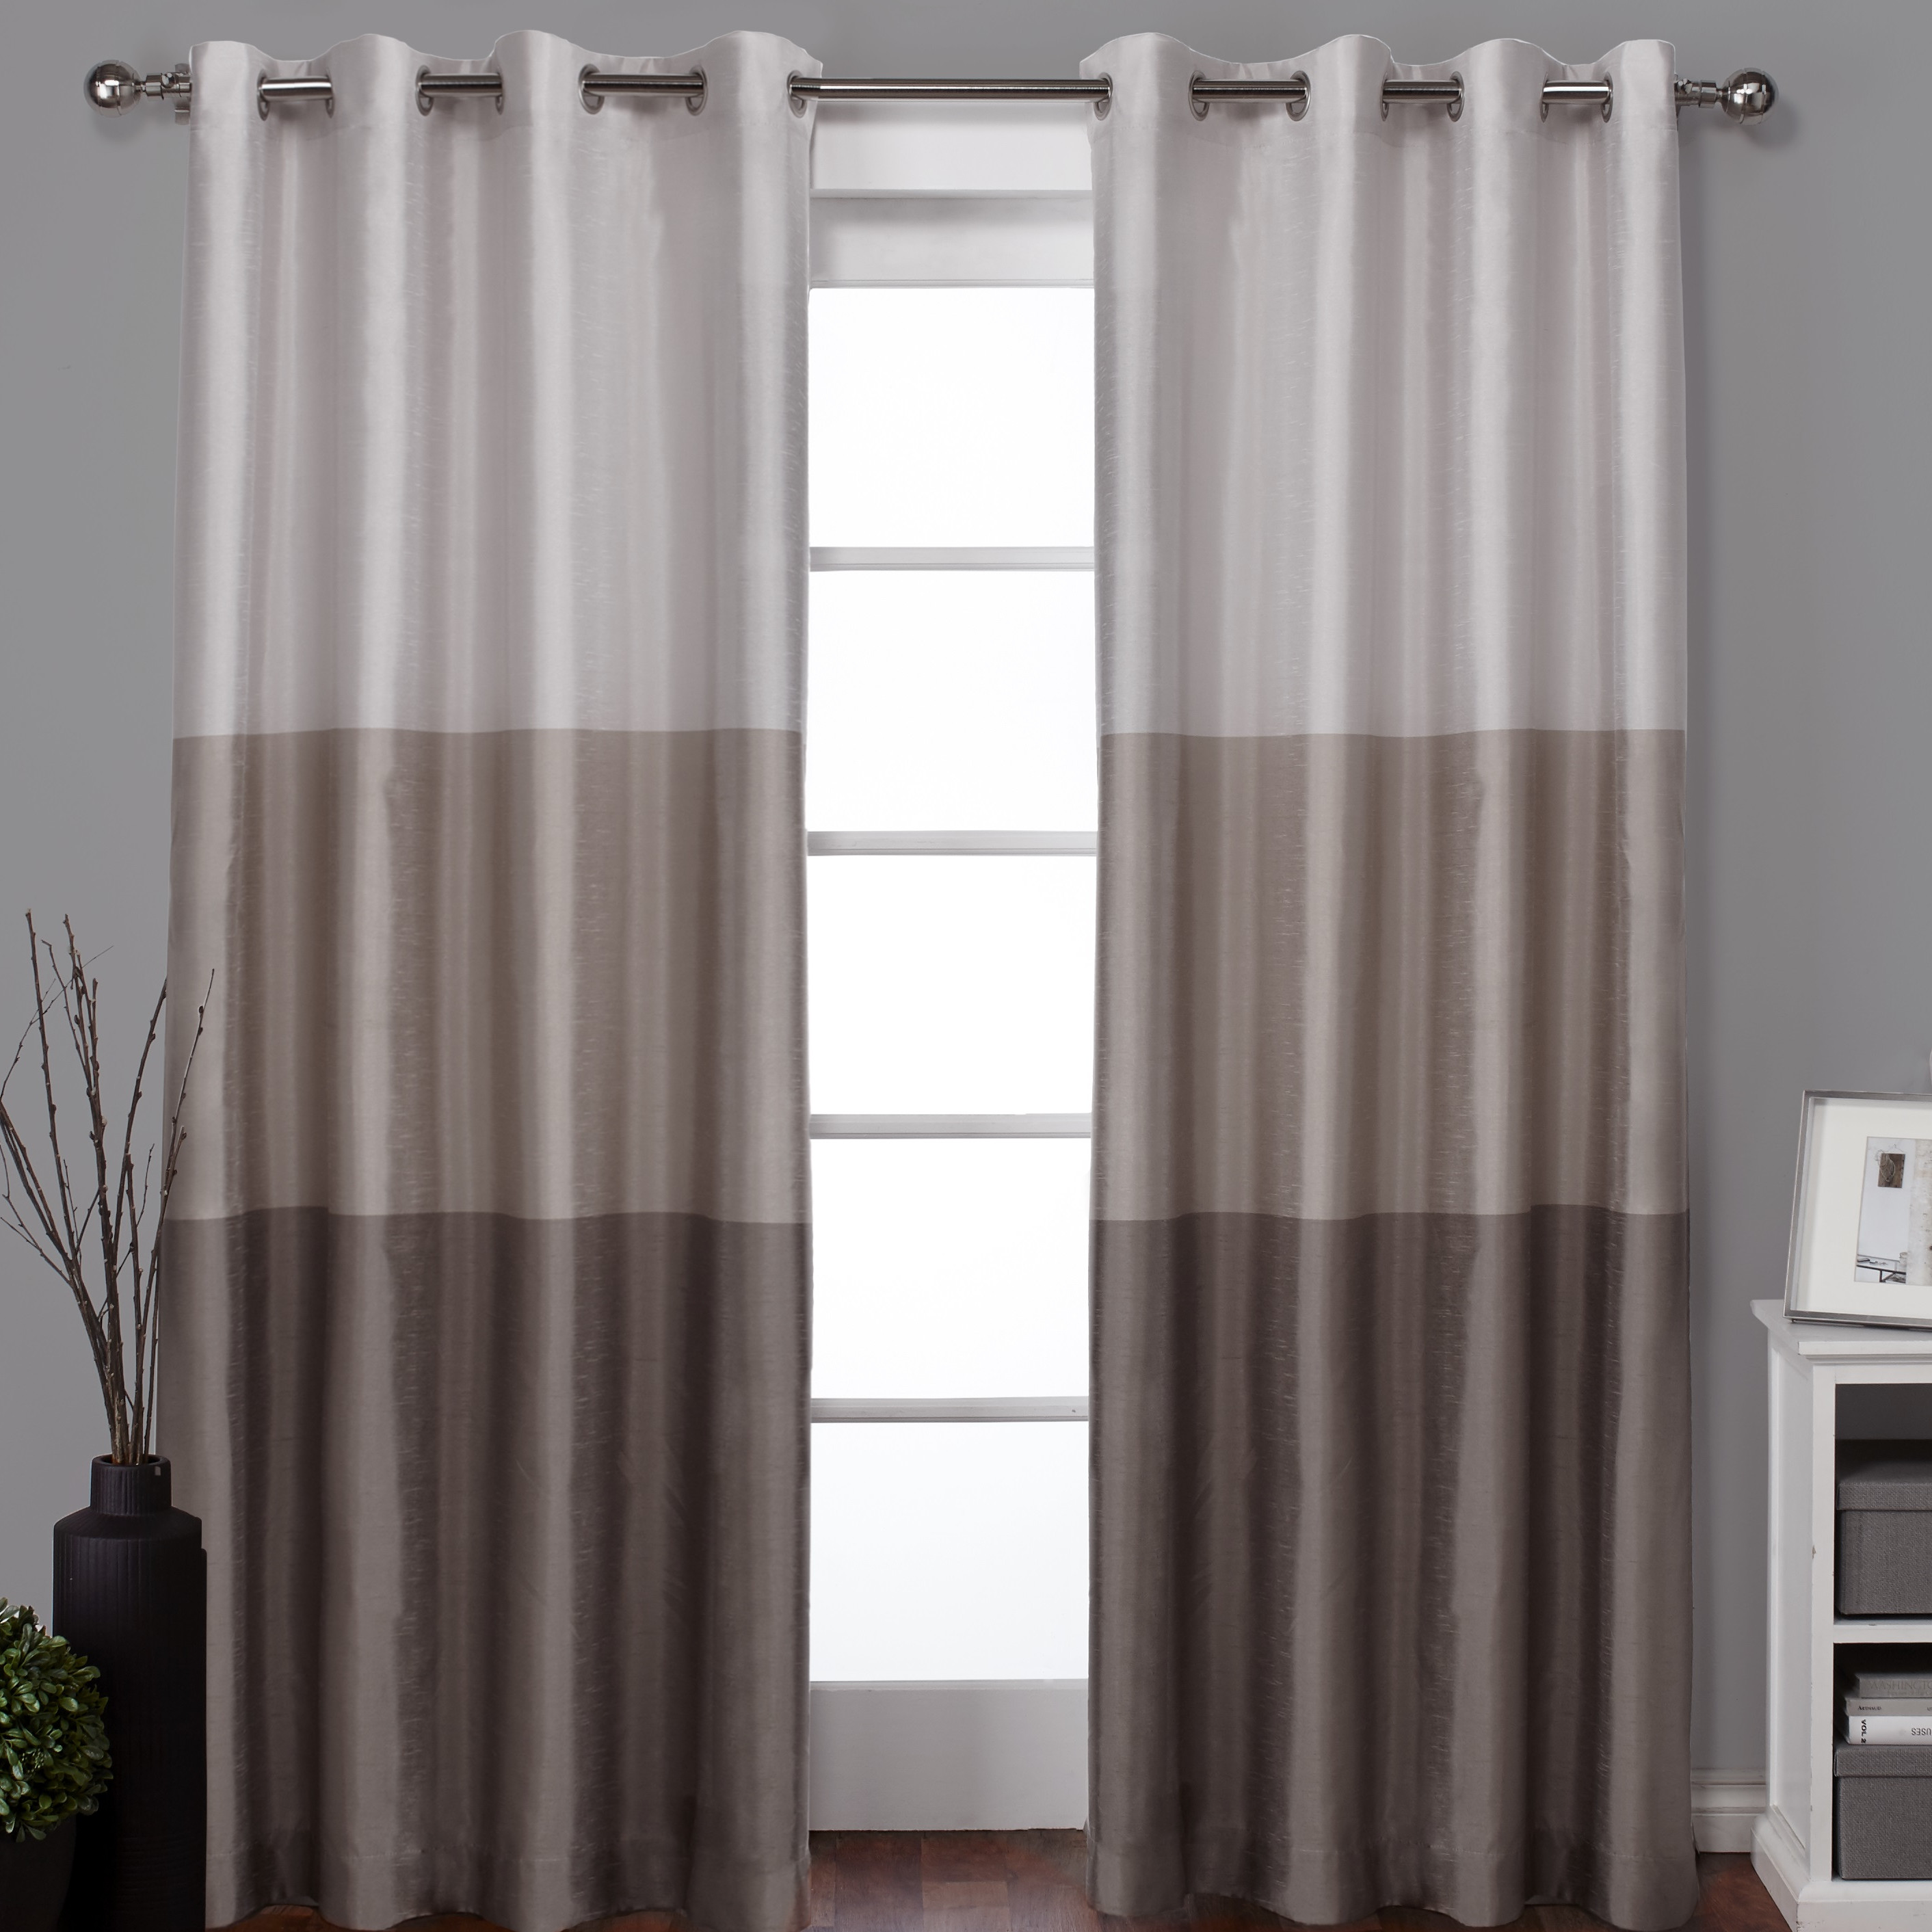 modern-curtains-drapes-allmodern-exclusive-home-curtain-panel-set-of-2_contemporary-curtain-fabrics_home-decor_contemporary-home-decor-yosemite-christian-modern-decorating-catalogs-halloween-decorator